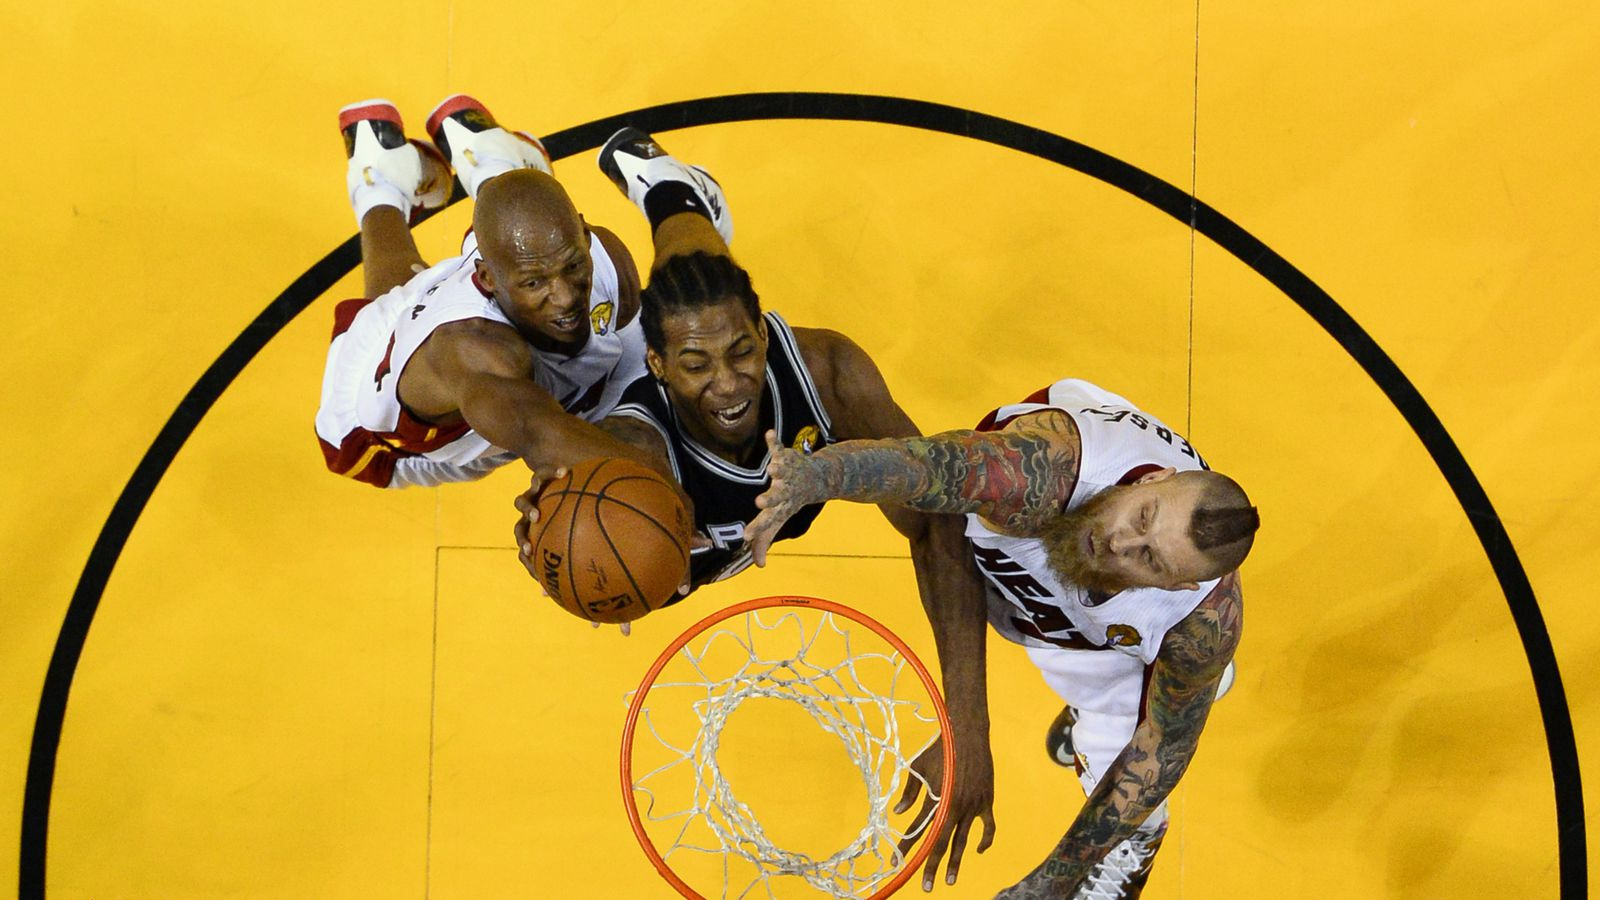 Spurs Vs Heat Fraternizing With The Enemy Skill And